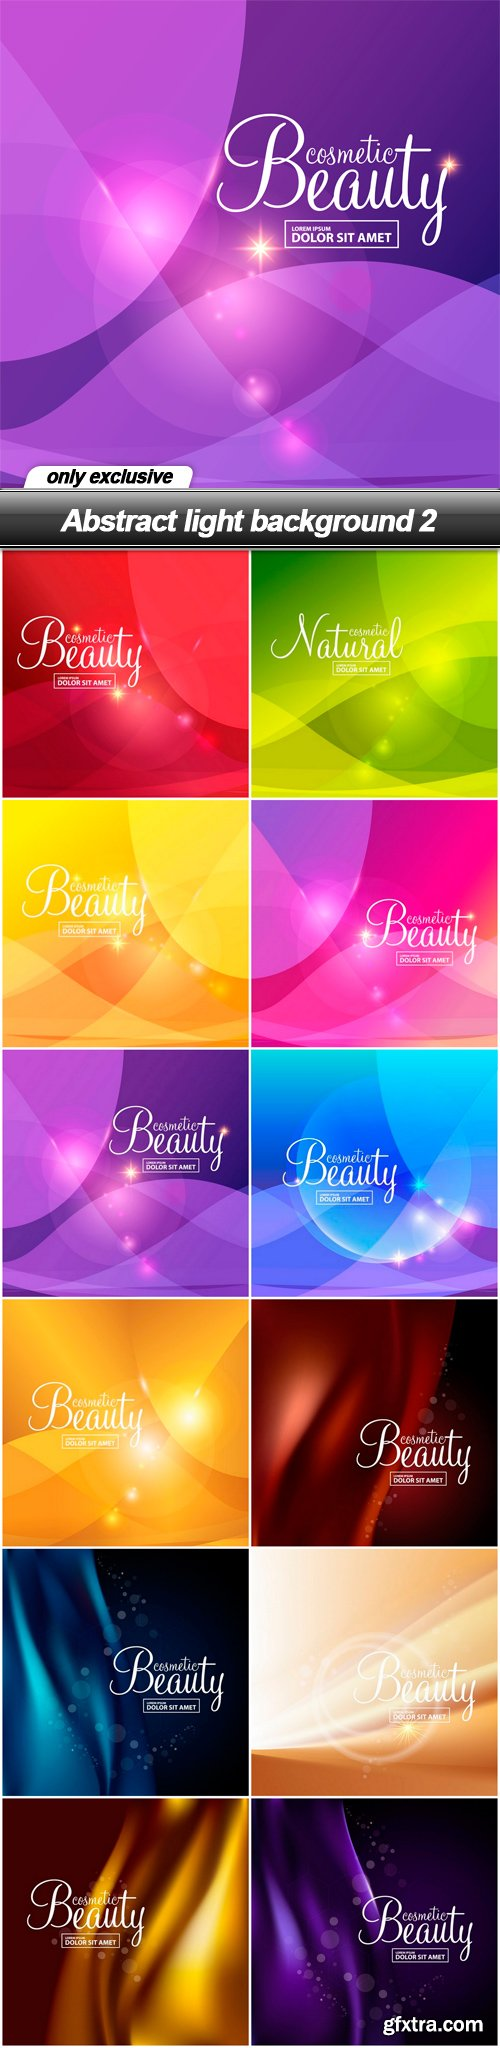 Abstract light background 2 - 12 EPS